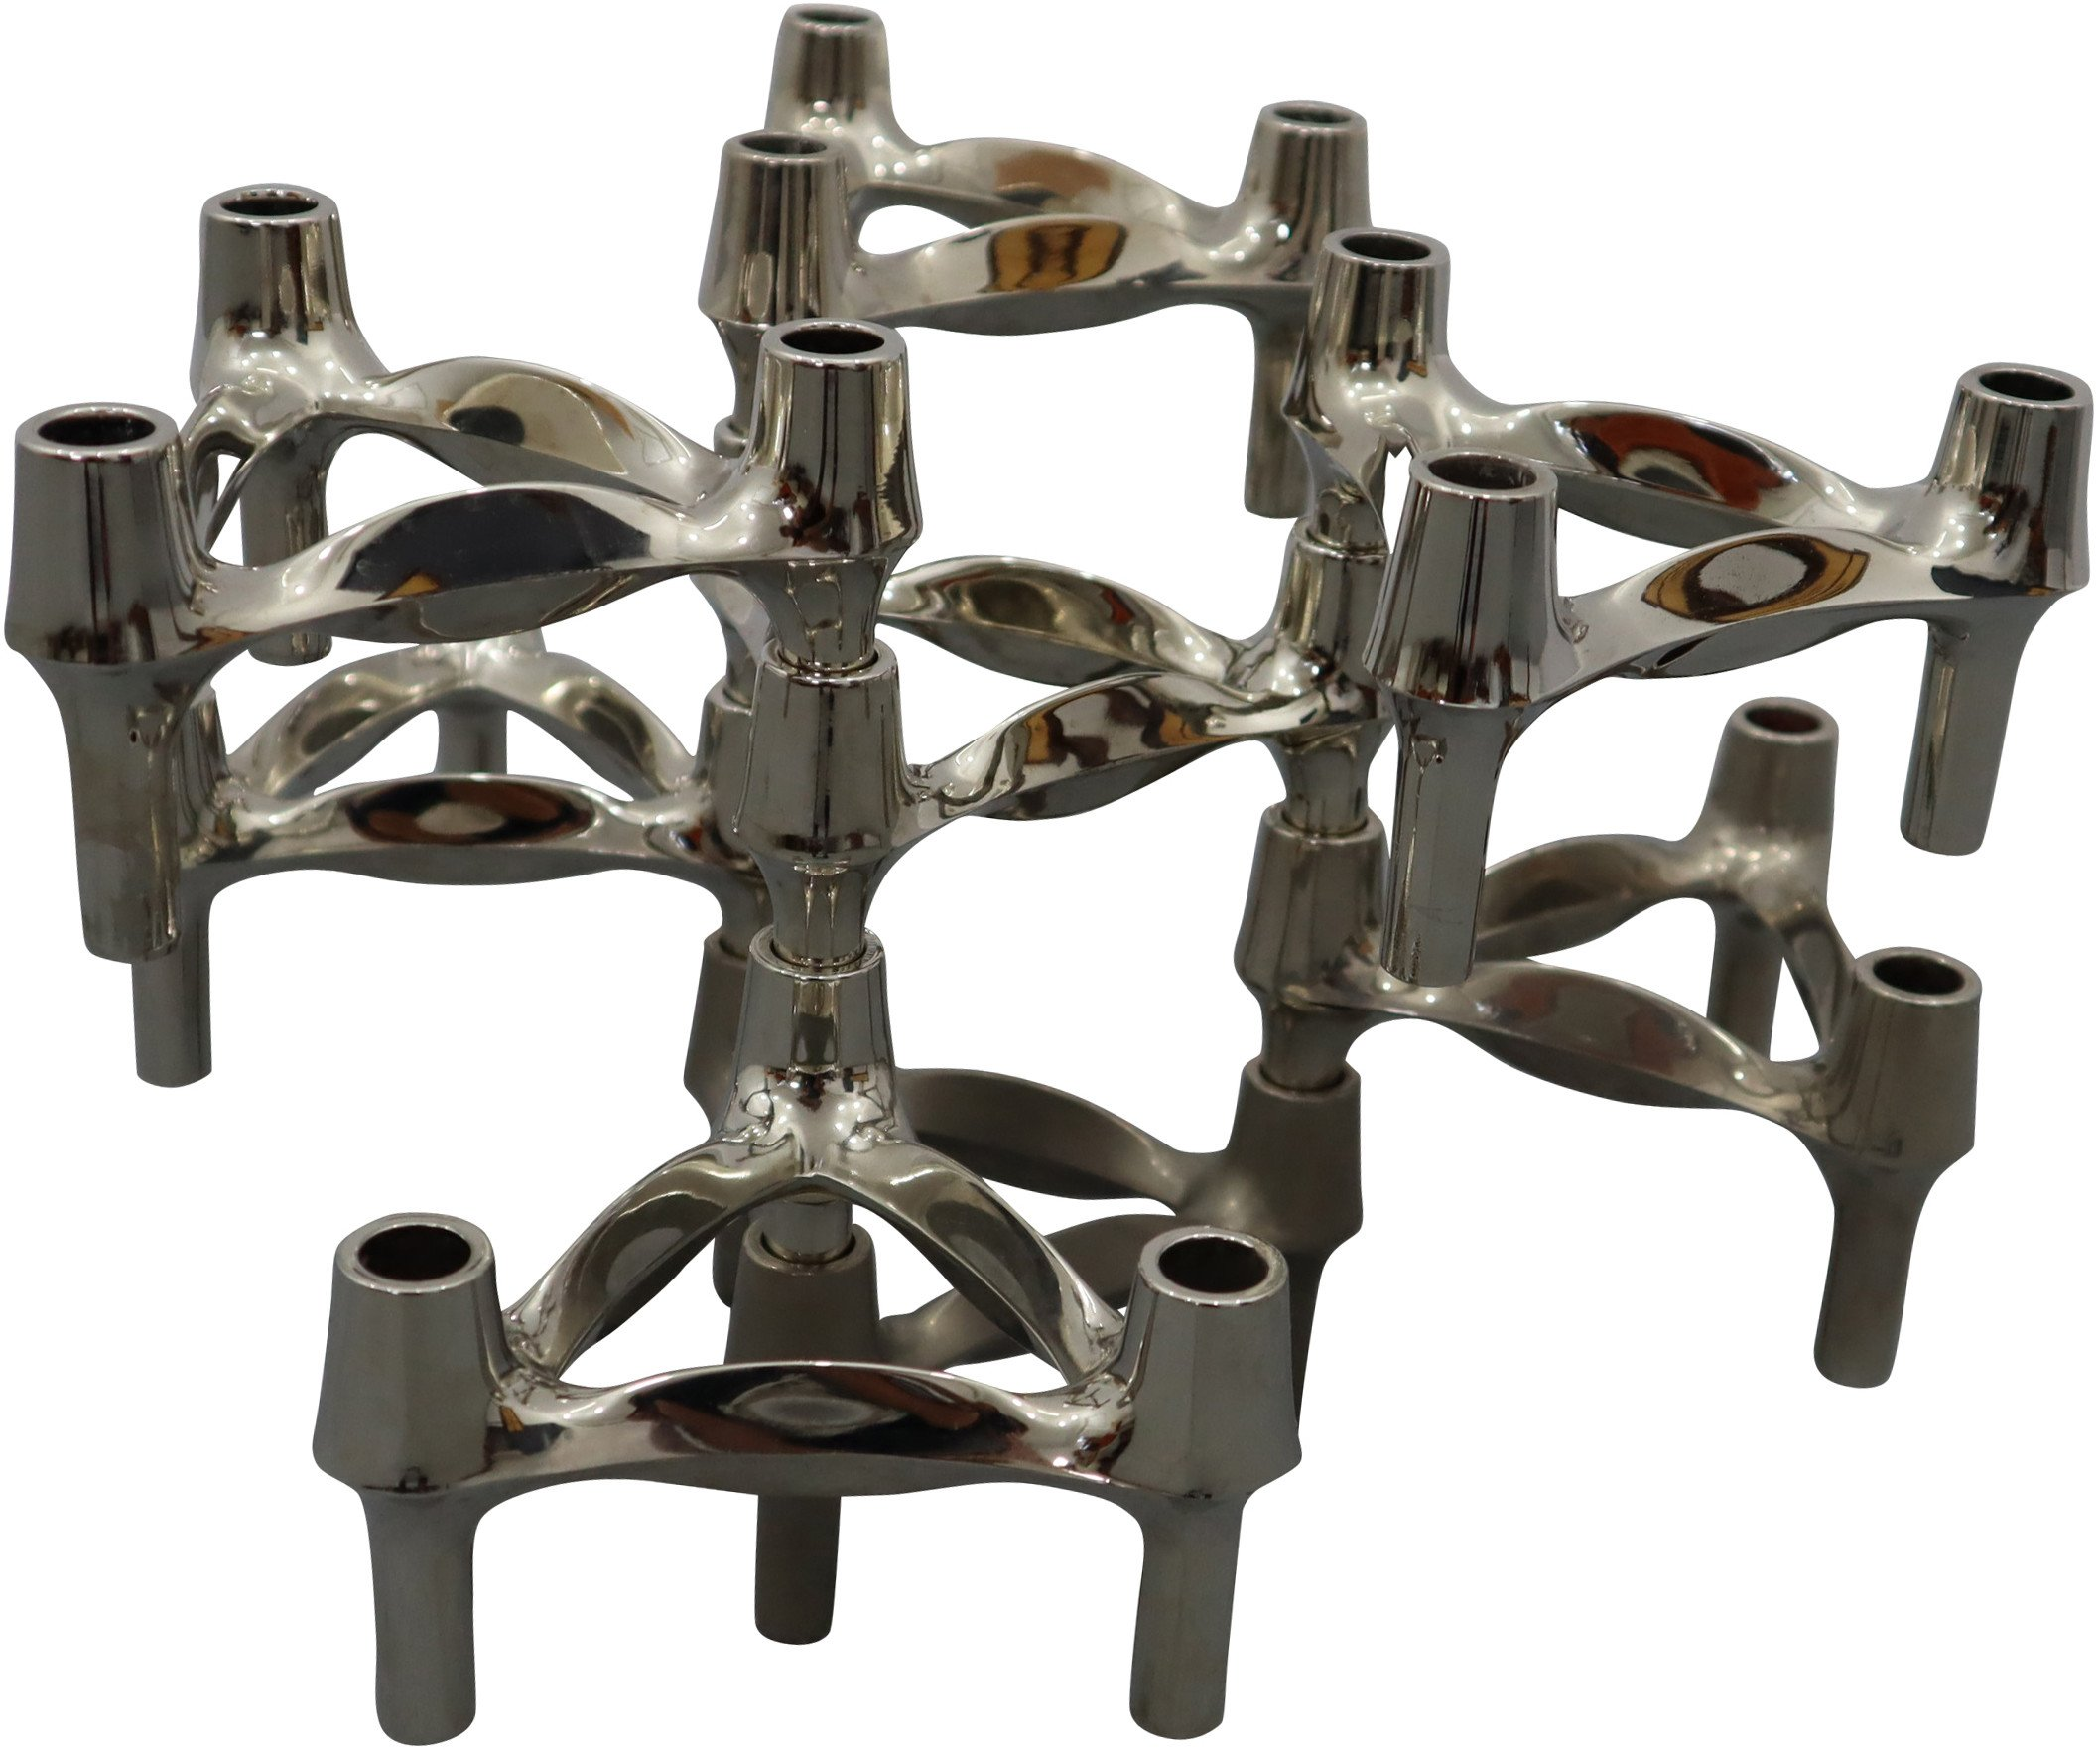 Set of Eight Modular Candleholders by W. Stoff & H. Nagel, BMF, 1970s